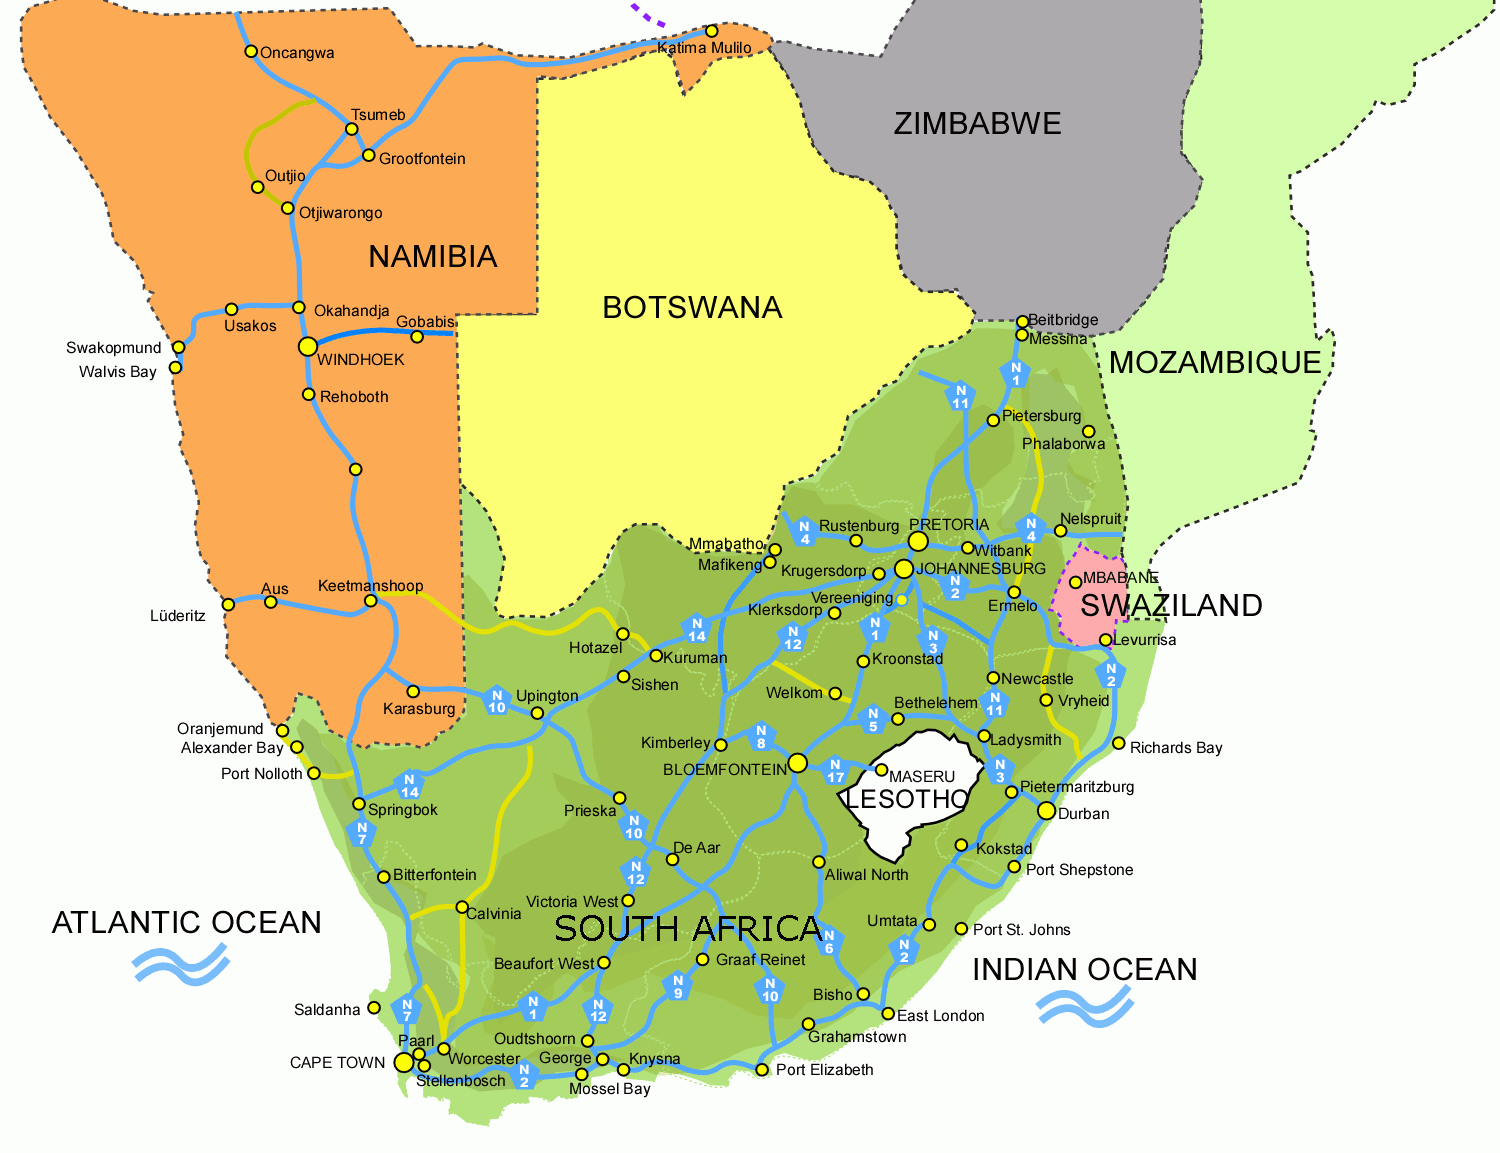 Lesotho Maps South Africa South Africa And Lesotho